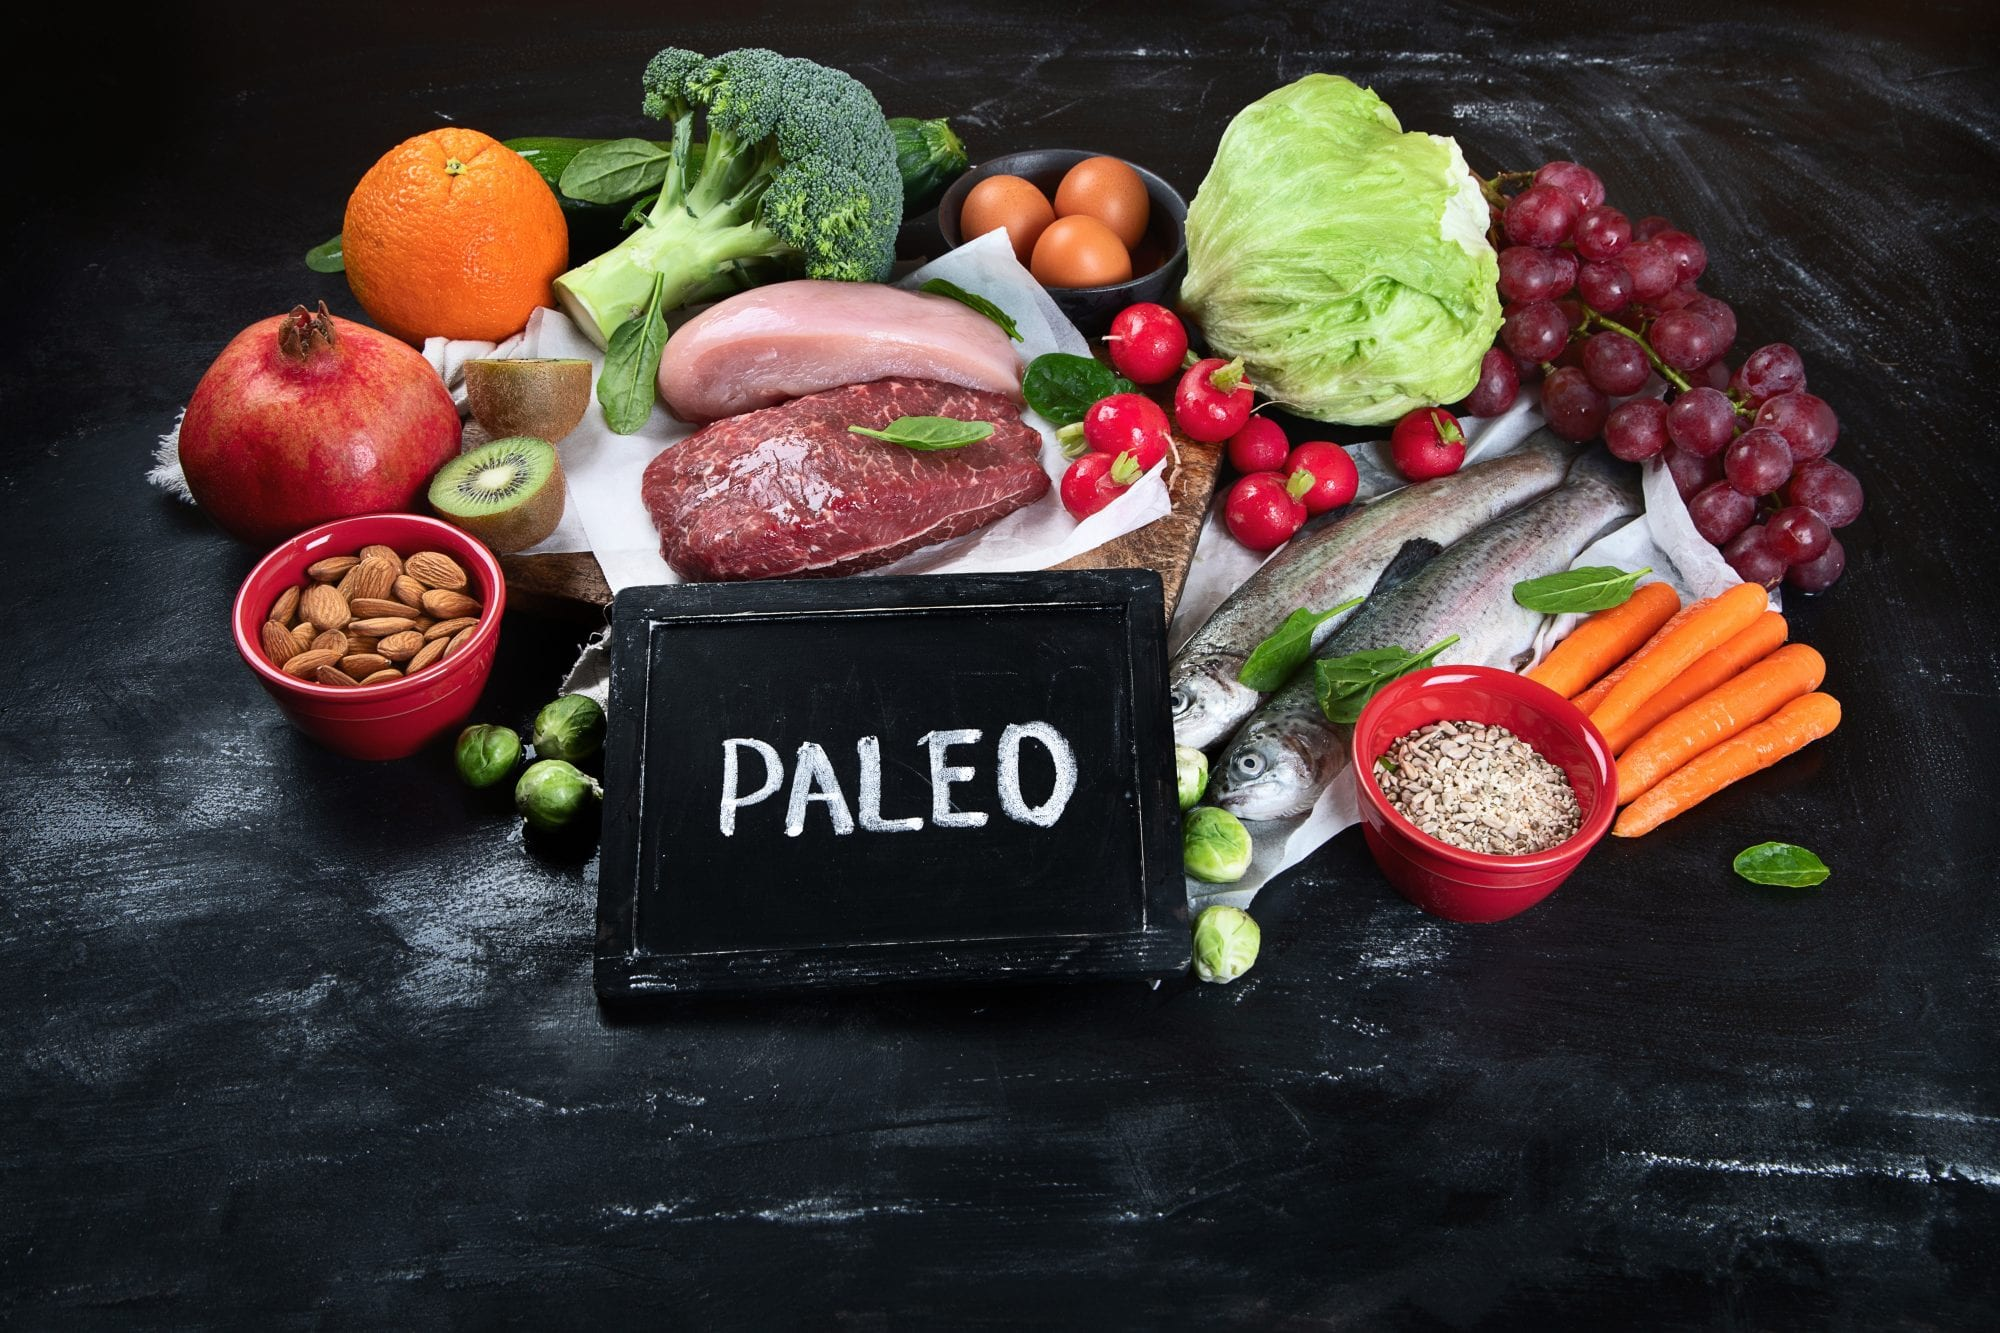 Paleo diet high-carbs products are bad for MS people.